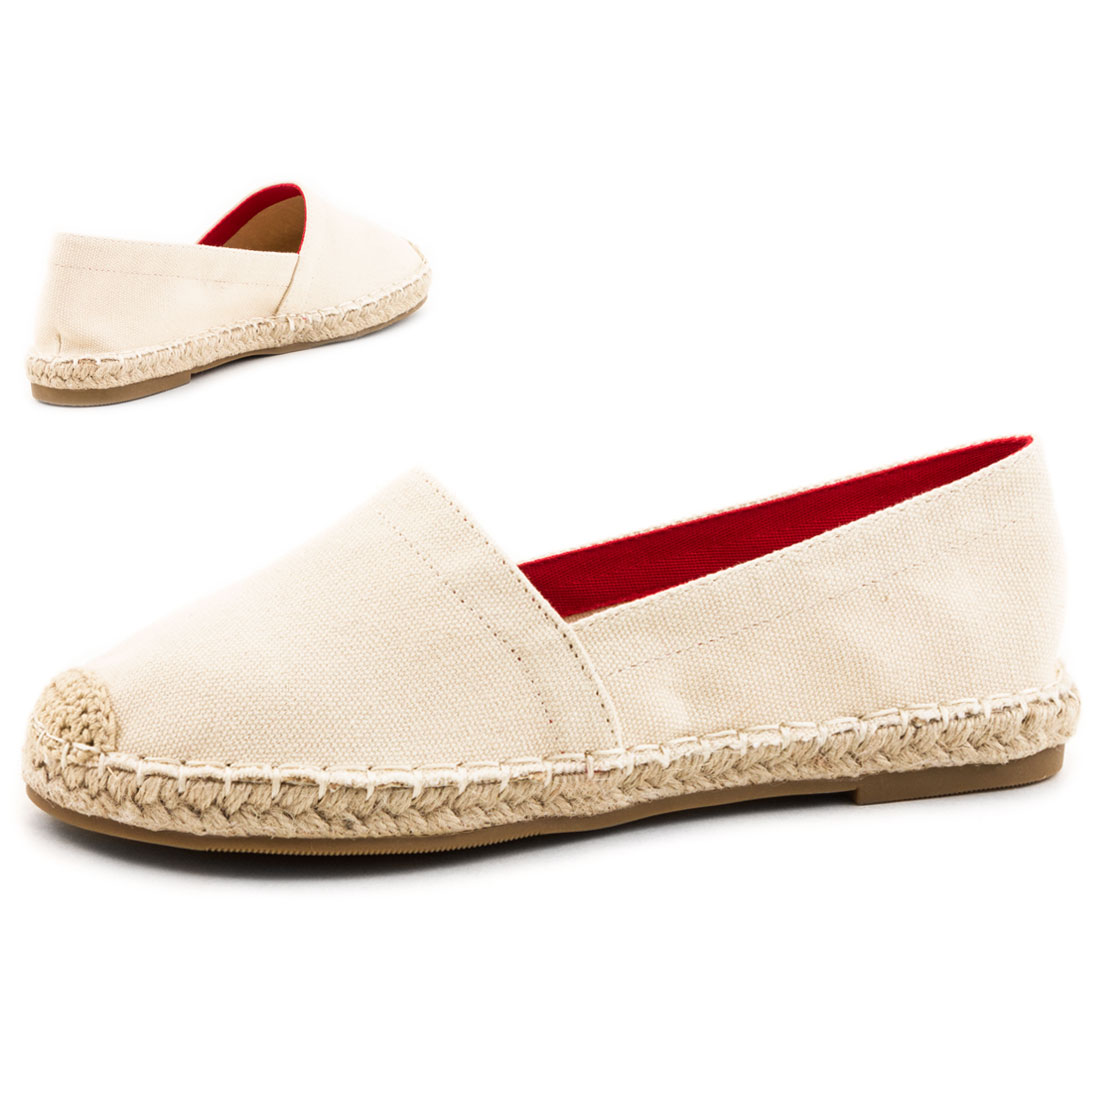 neu damen sommer espadrilles slipper halbschuhe bast schuhe gr 36 37 38 39 40 41 ebay. Black Bedroom Furniture Sets. Home Design Ideas